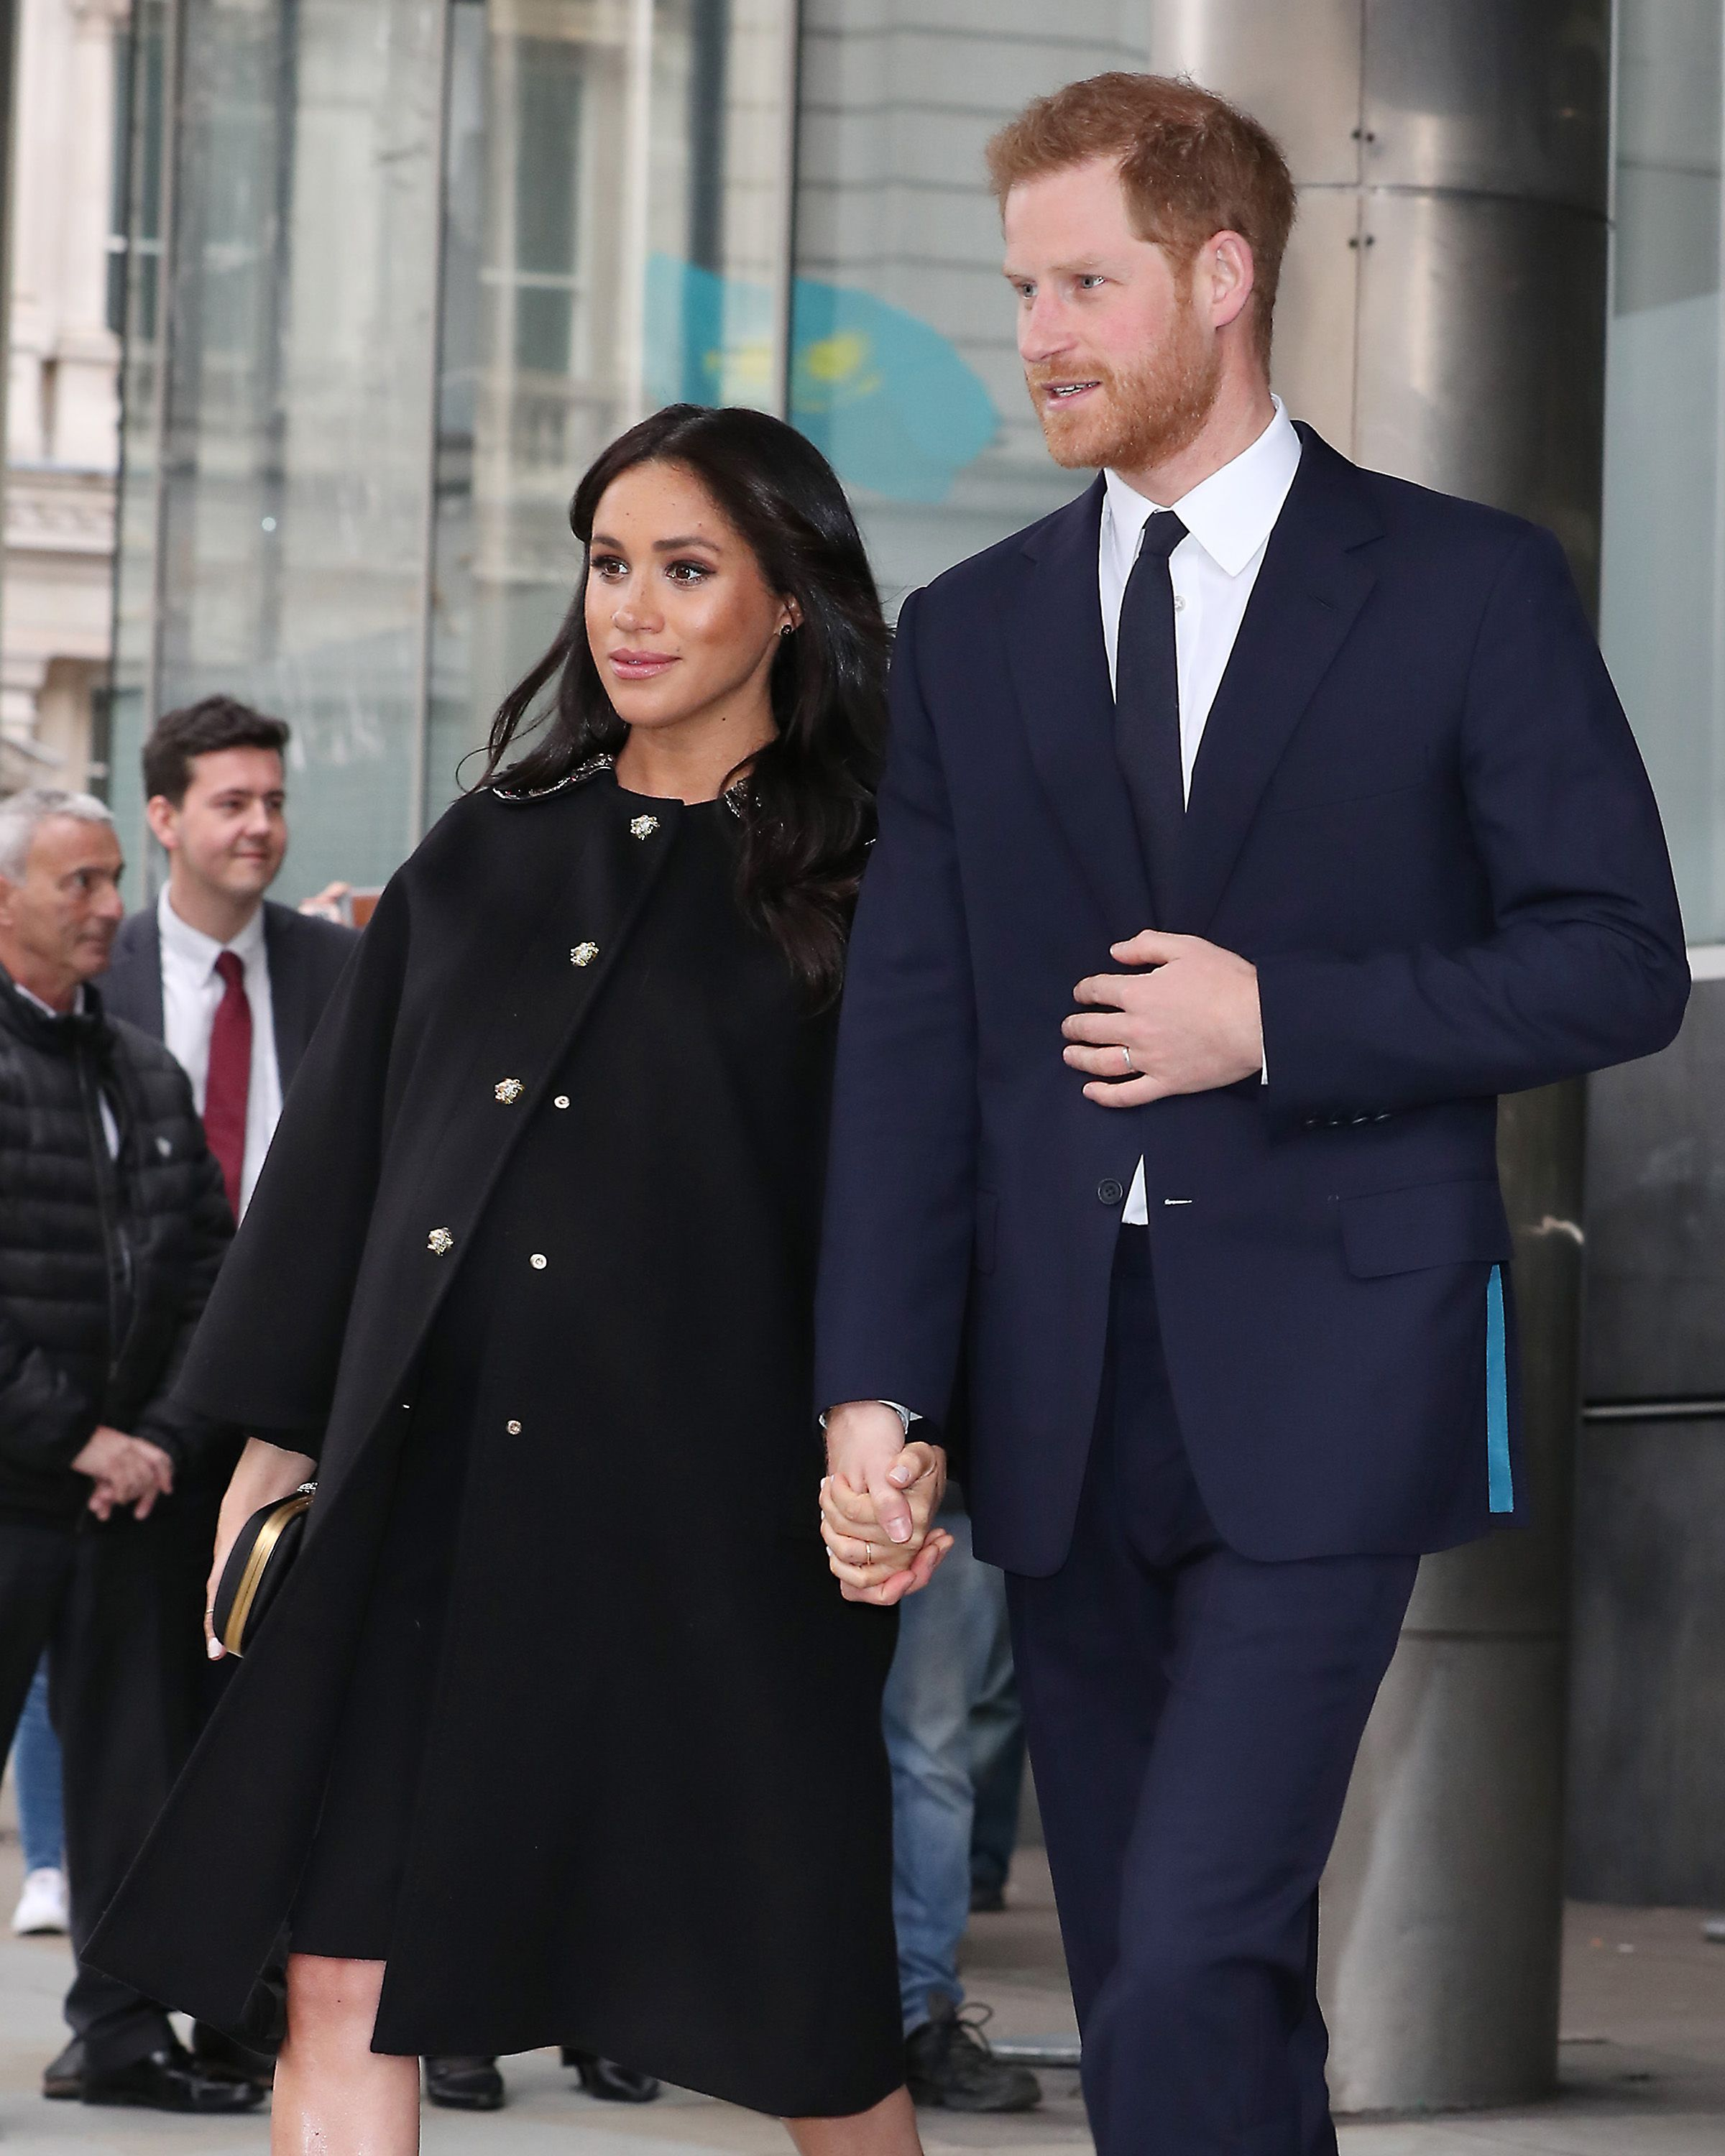 Will Meghan Markle and Prince Harry Name Their Baby Diana?